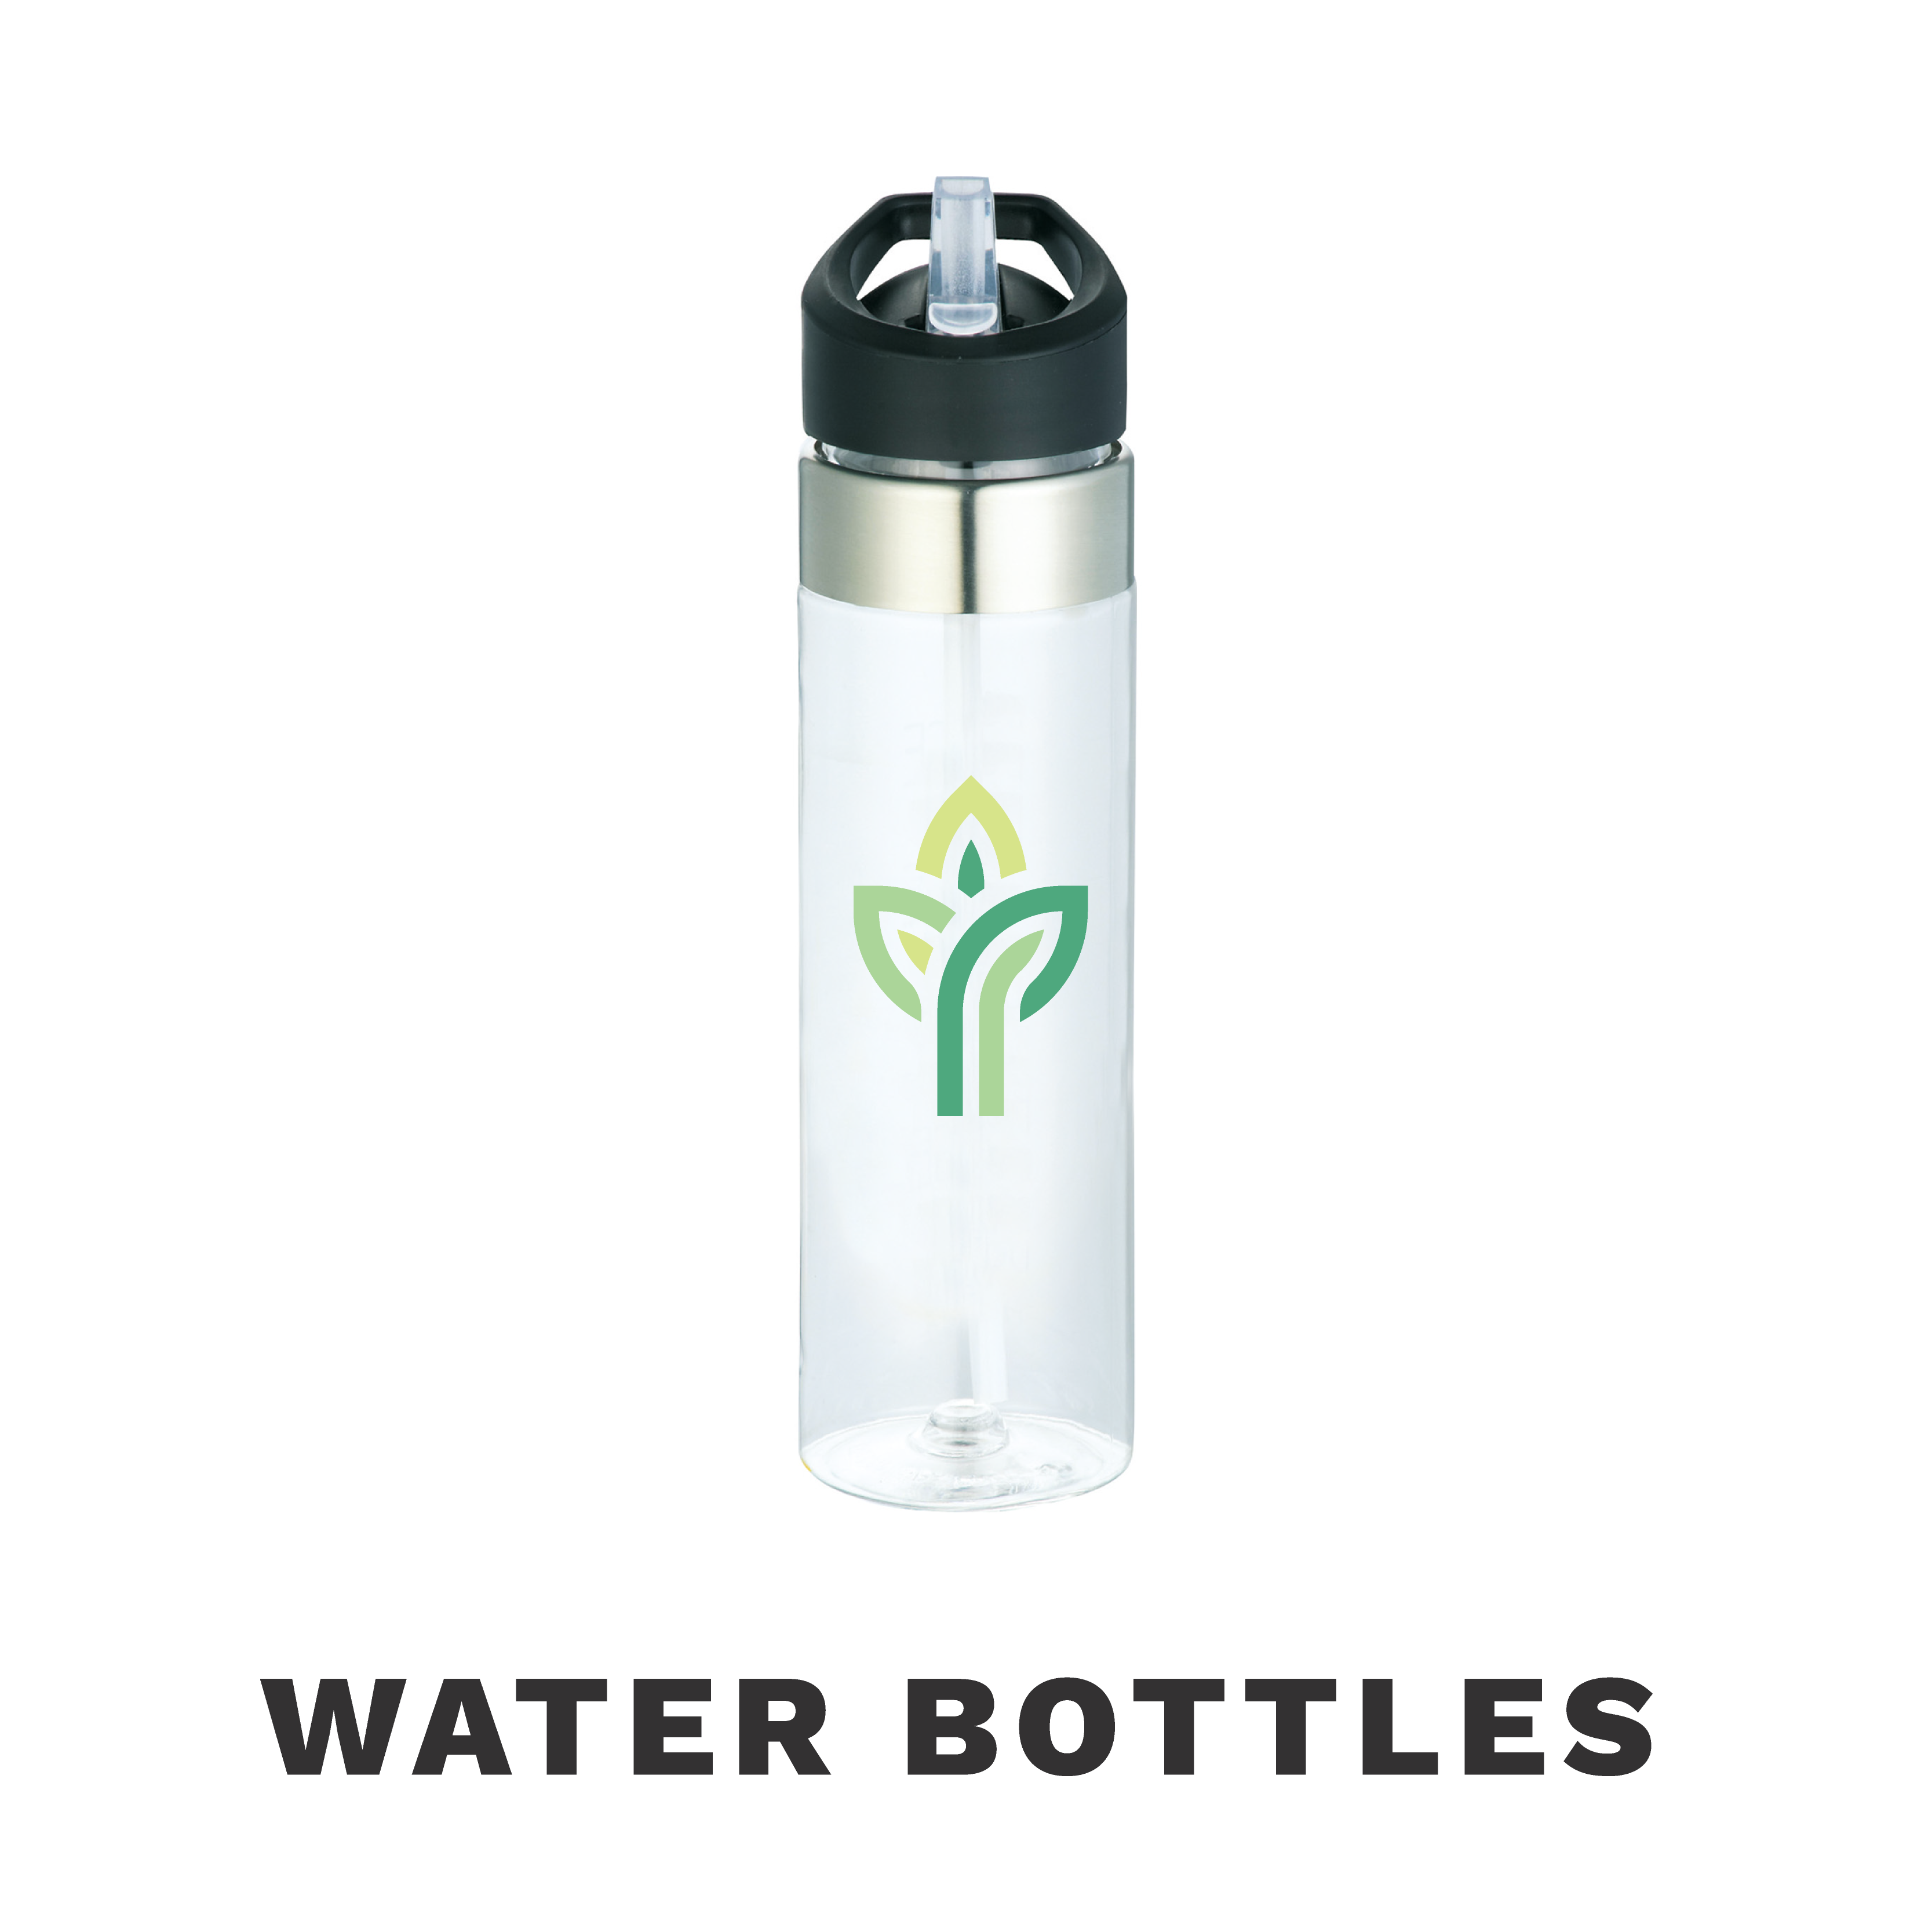 Your brand water bottle